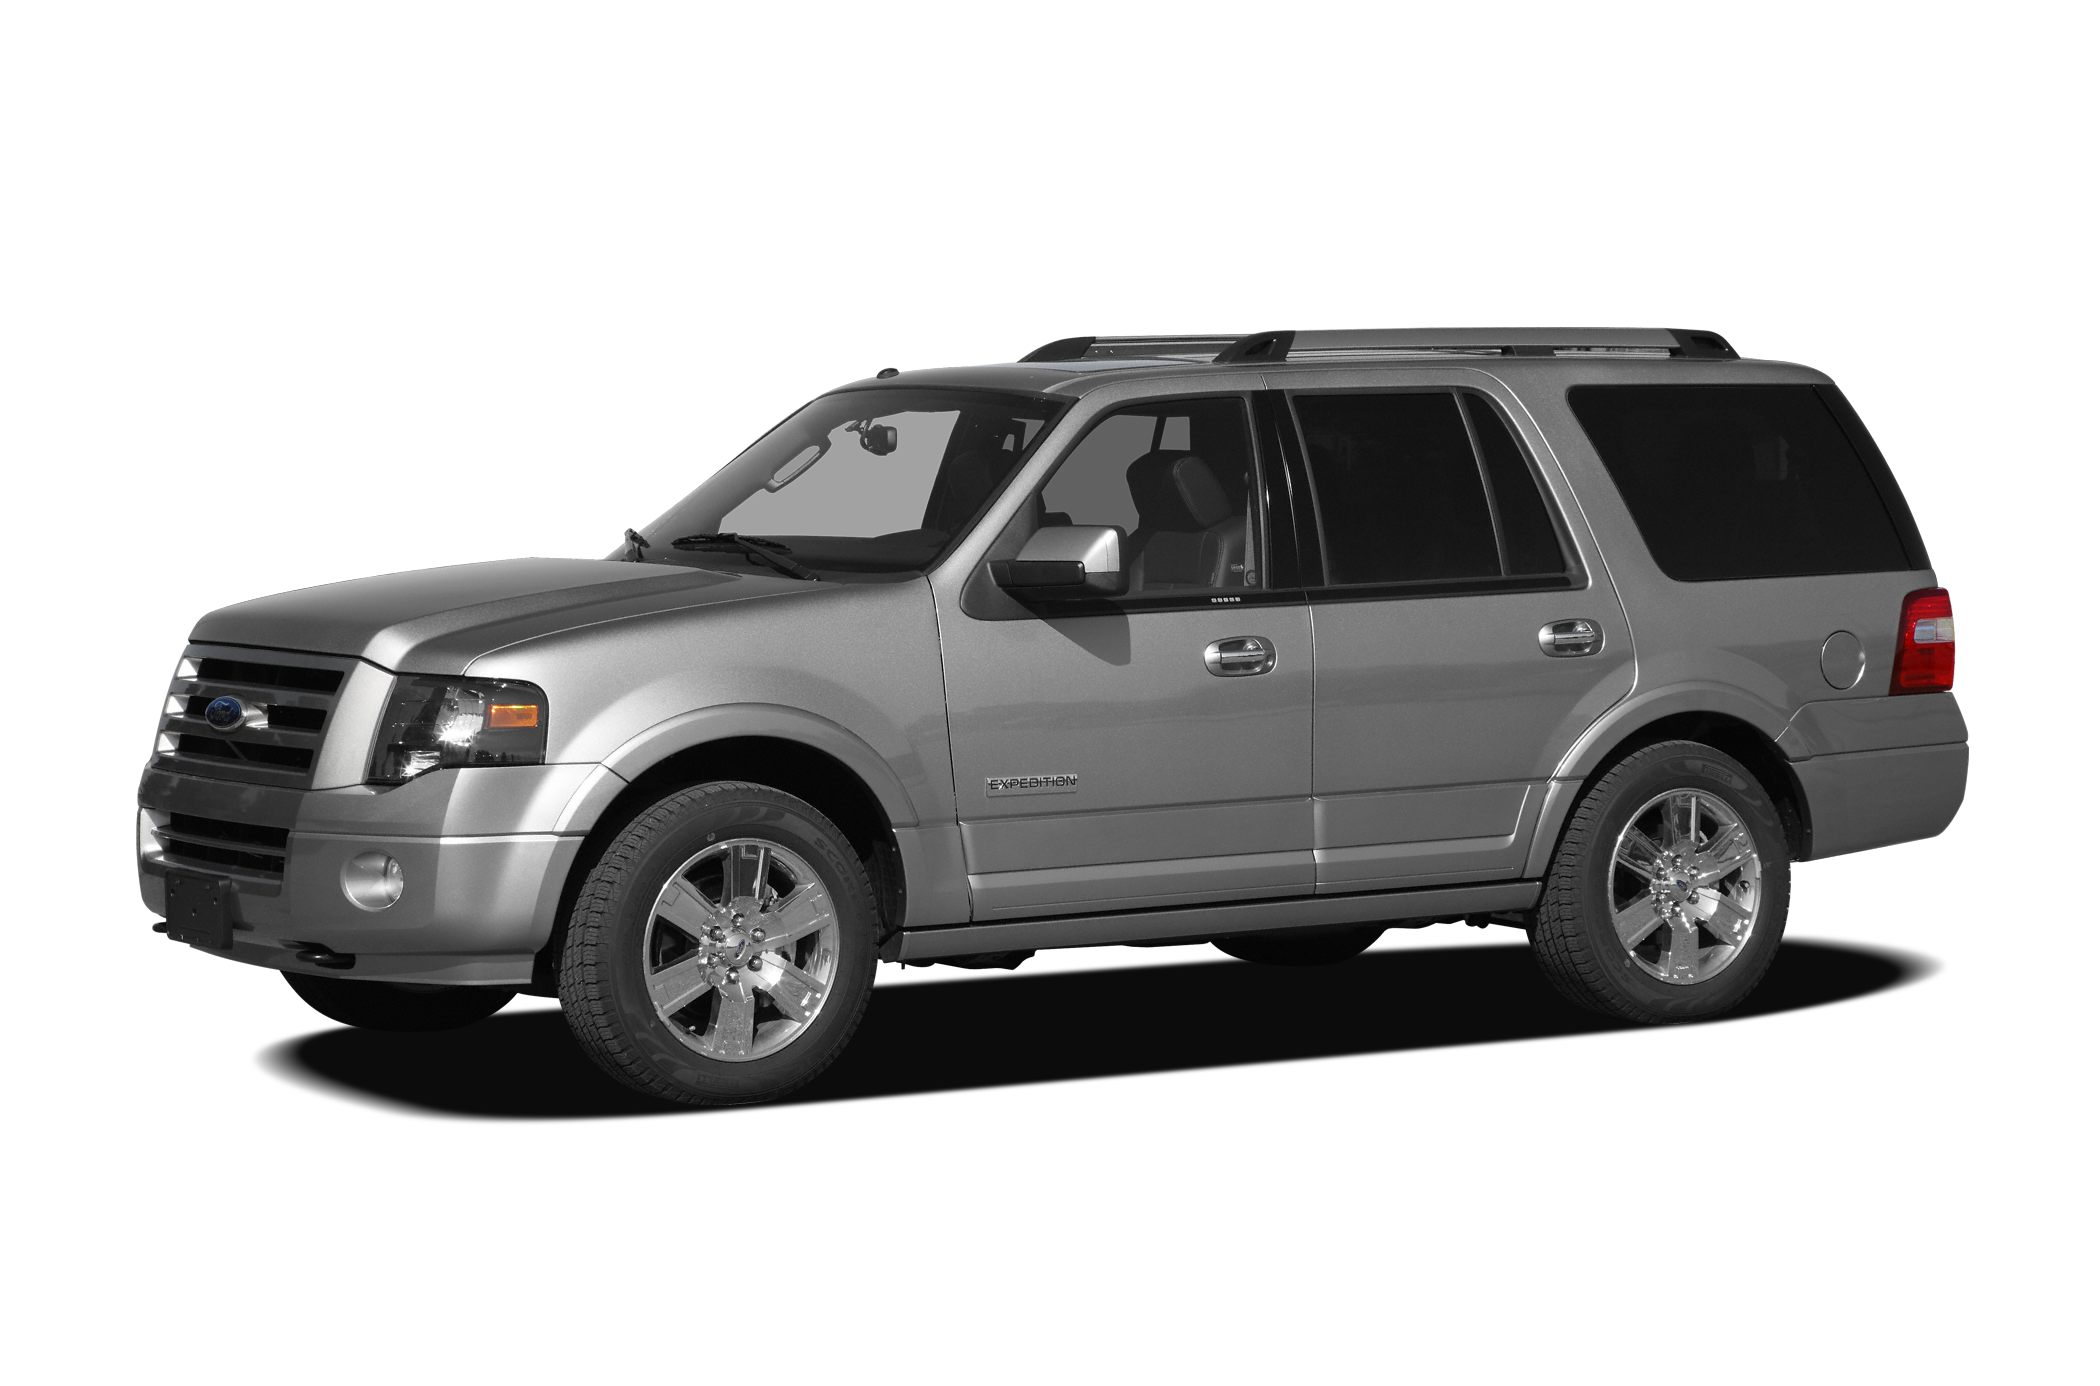 2009 Ford Expedition Recalls